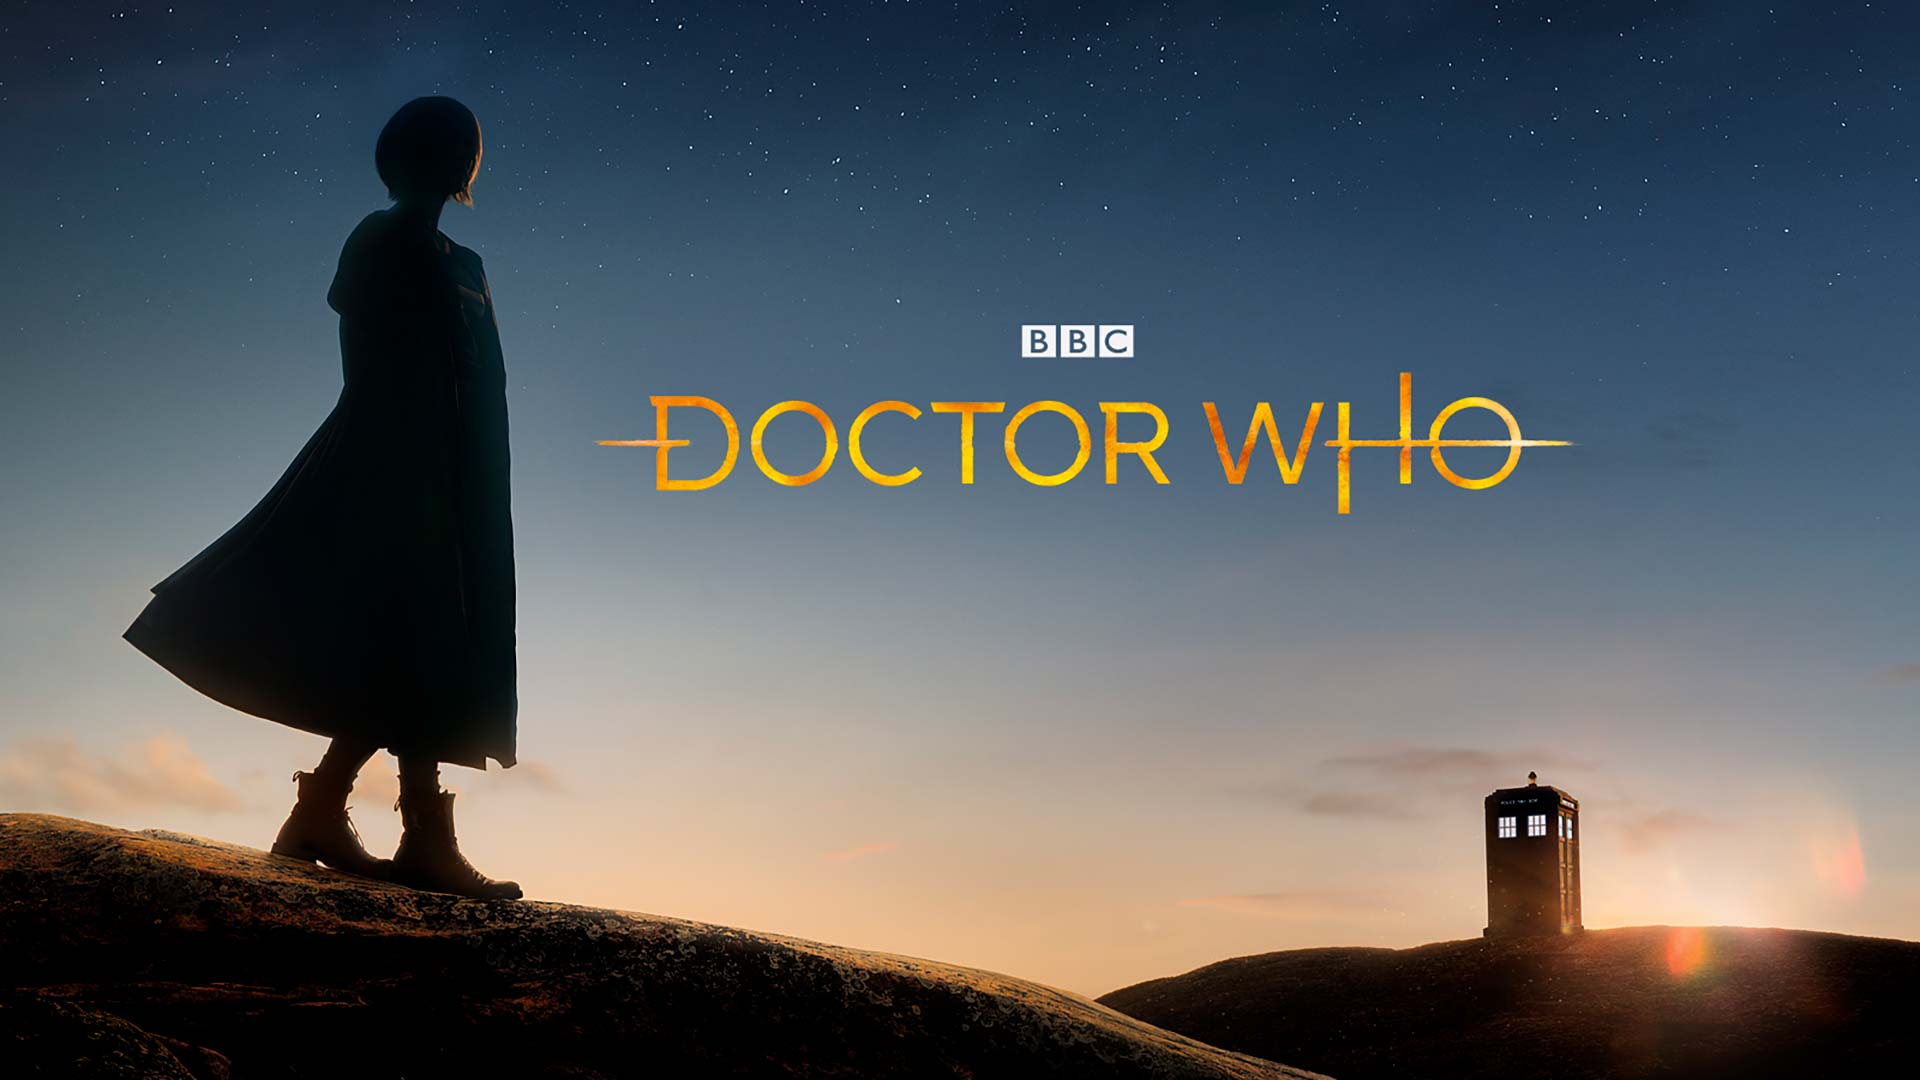 New Doctor Who logo unveiled teasing Jodie Whittaker's 13th Doctor